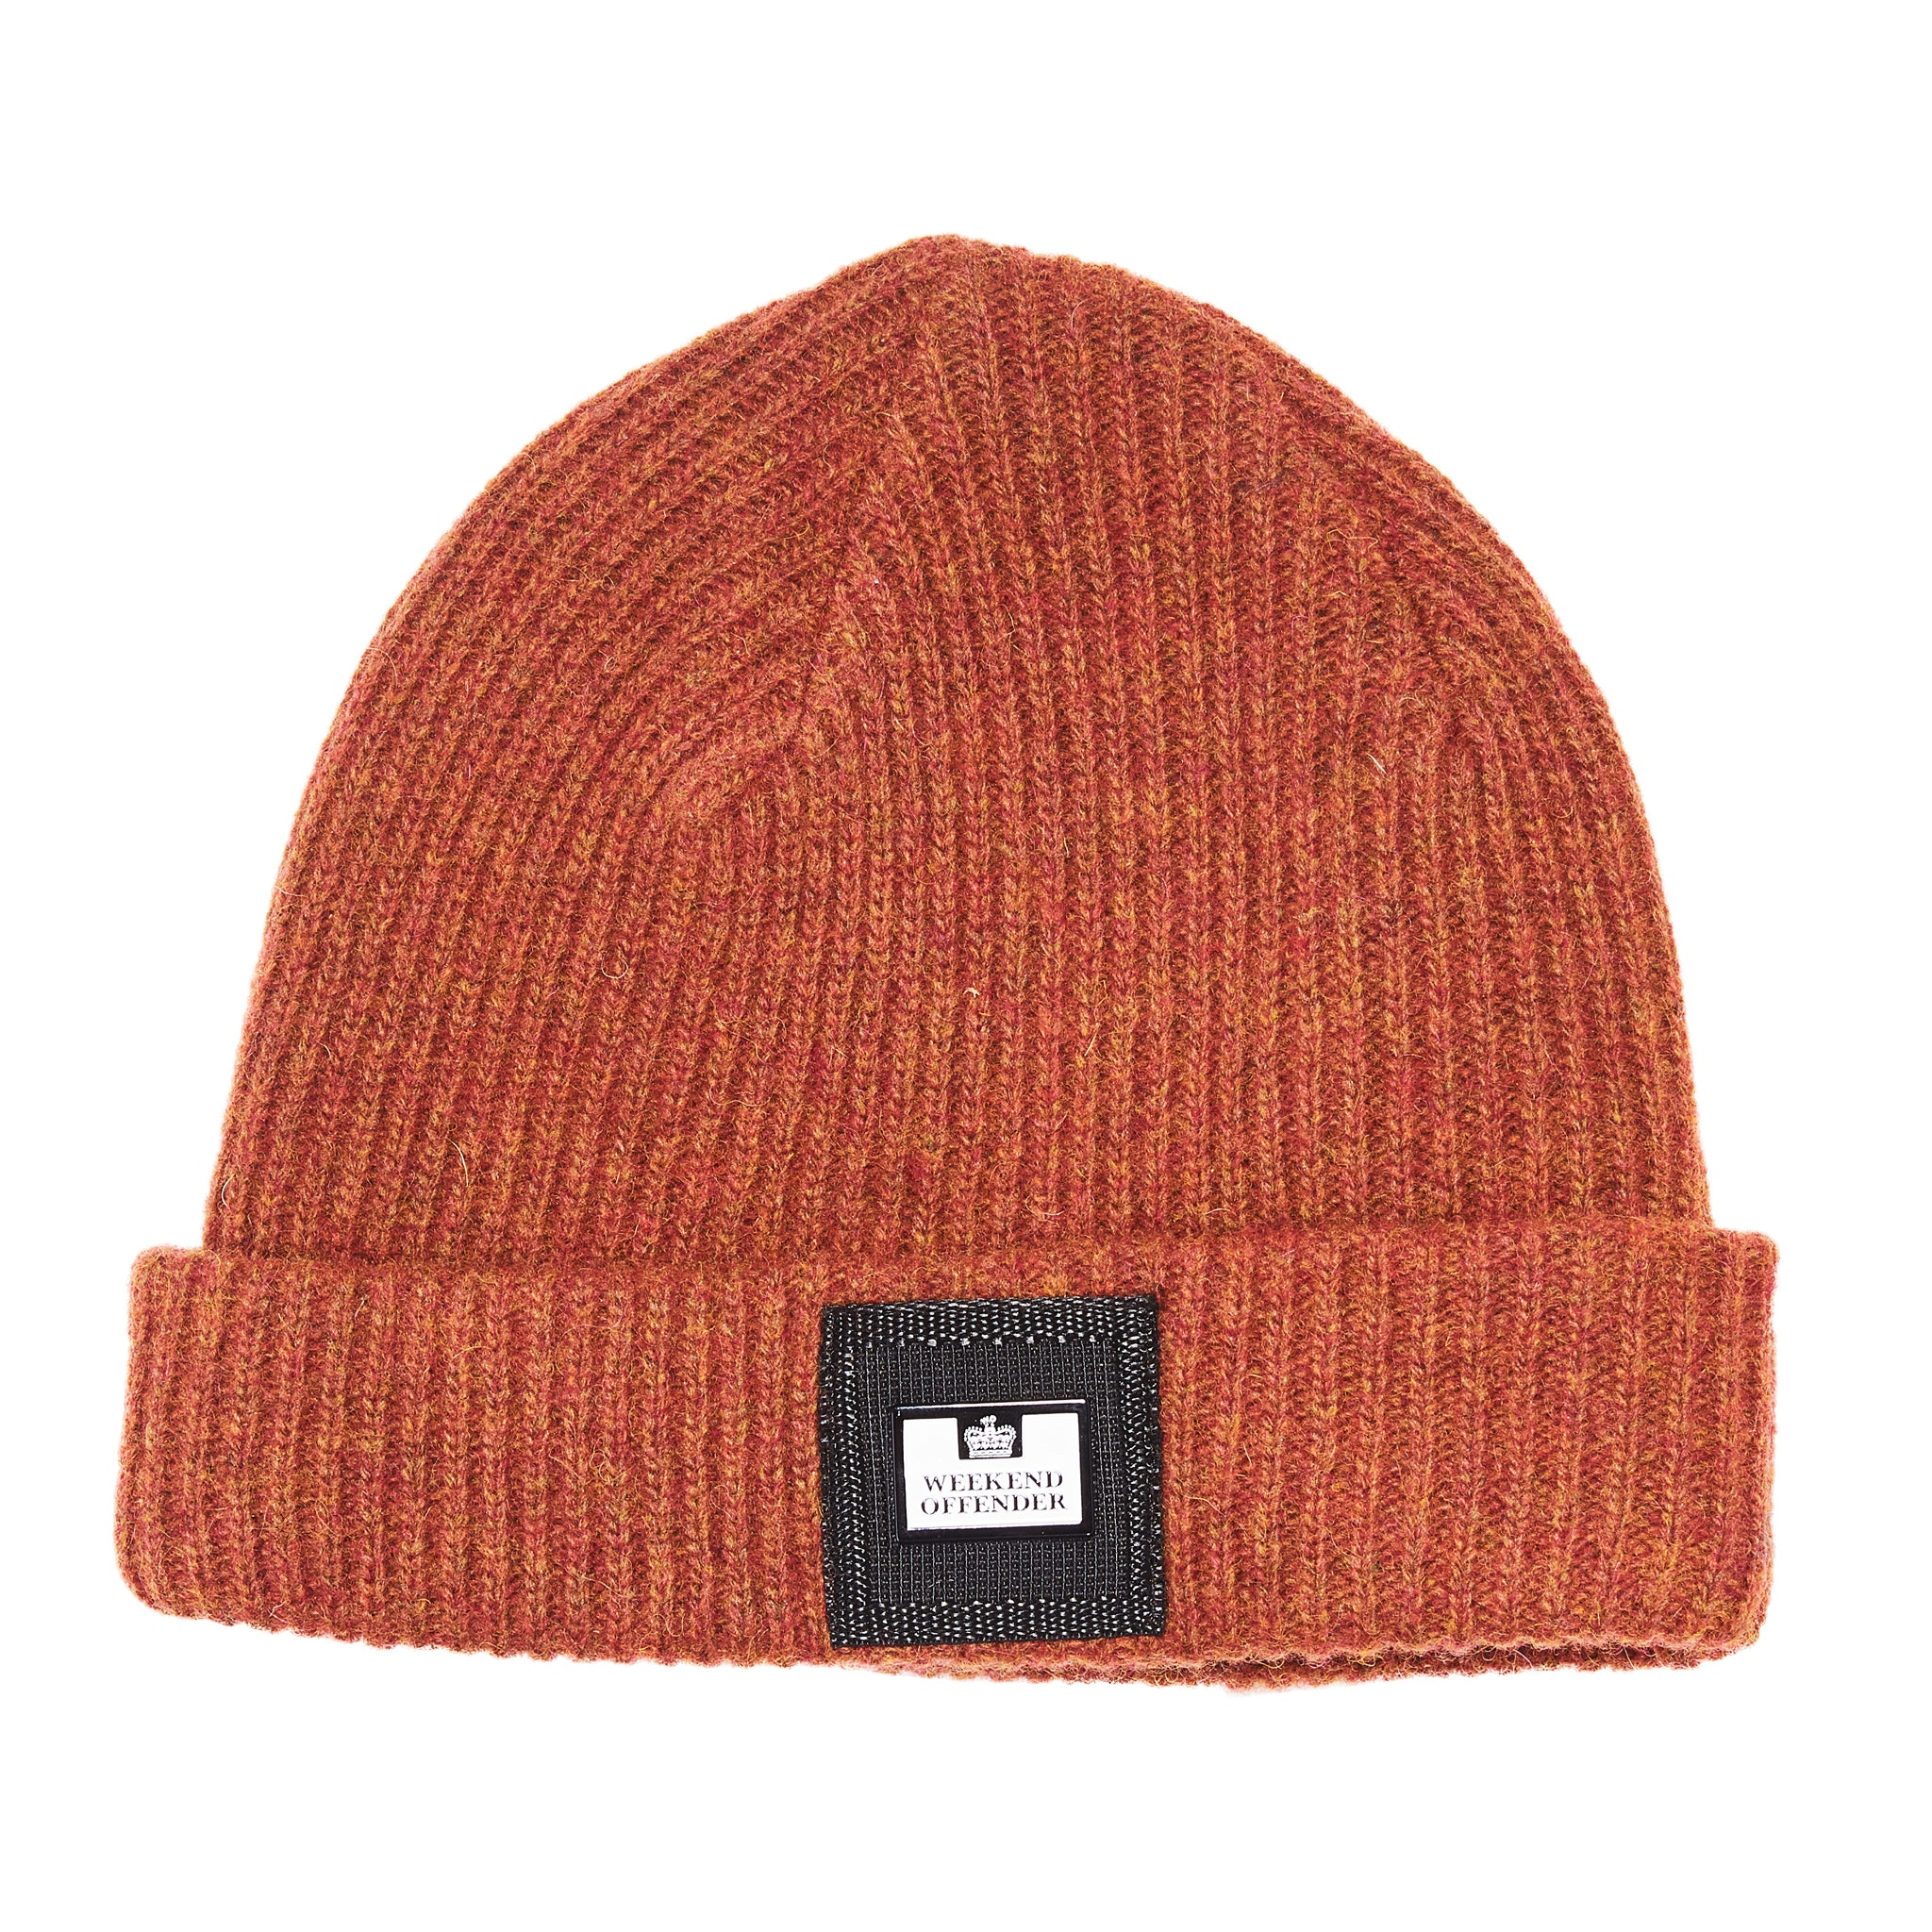 Stallone AW18 Rust Weekend Offender Beanie Hat